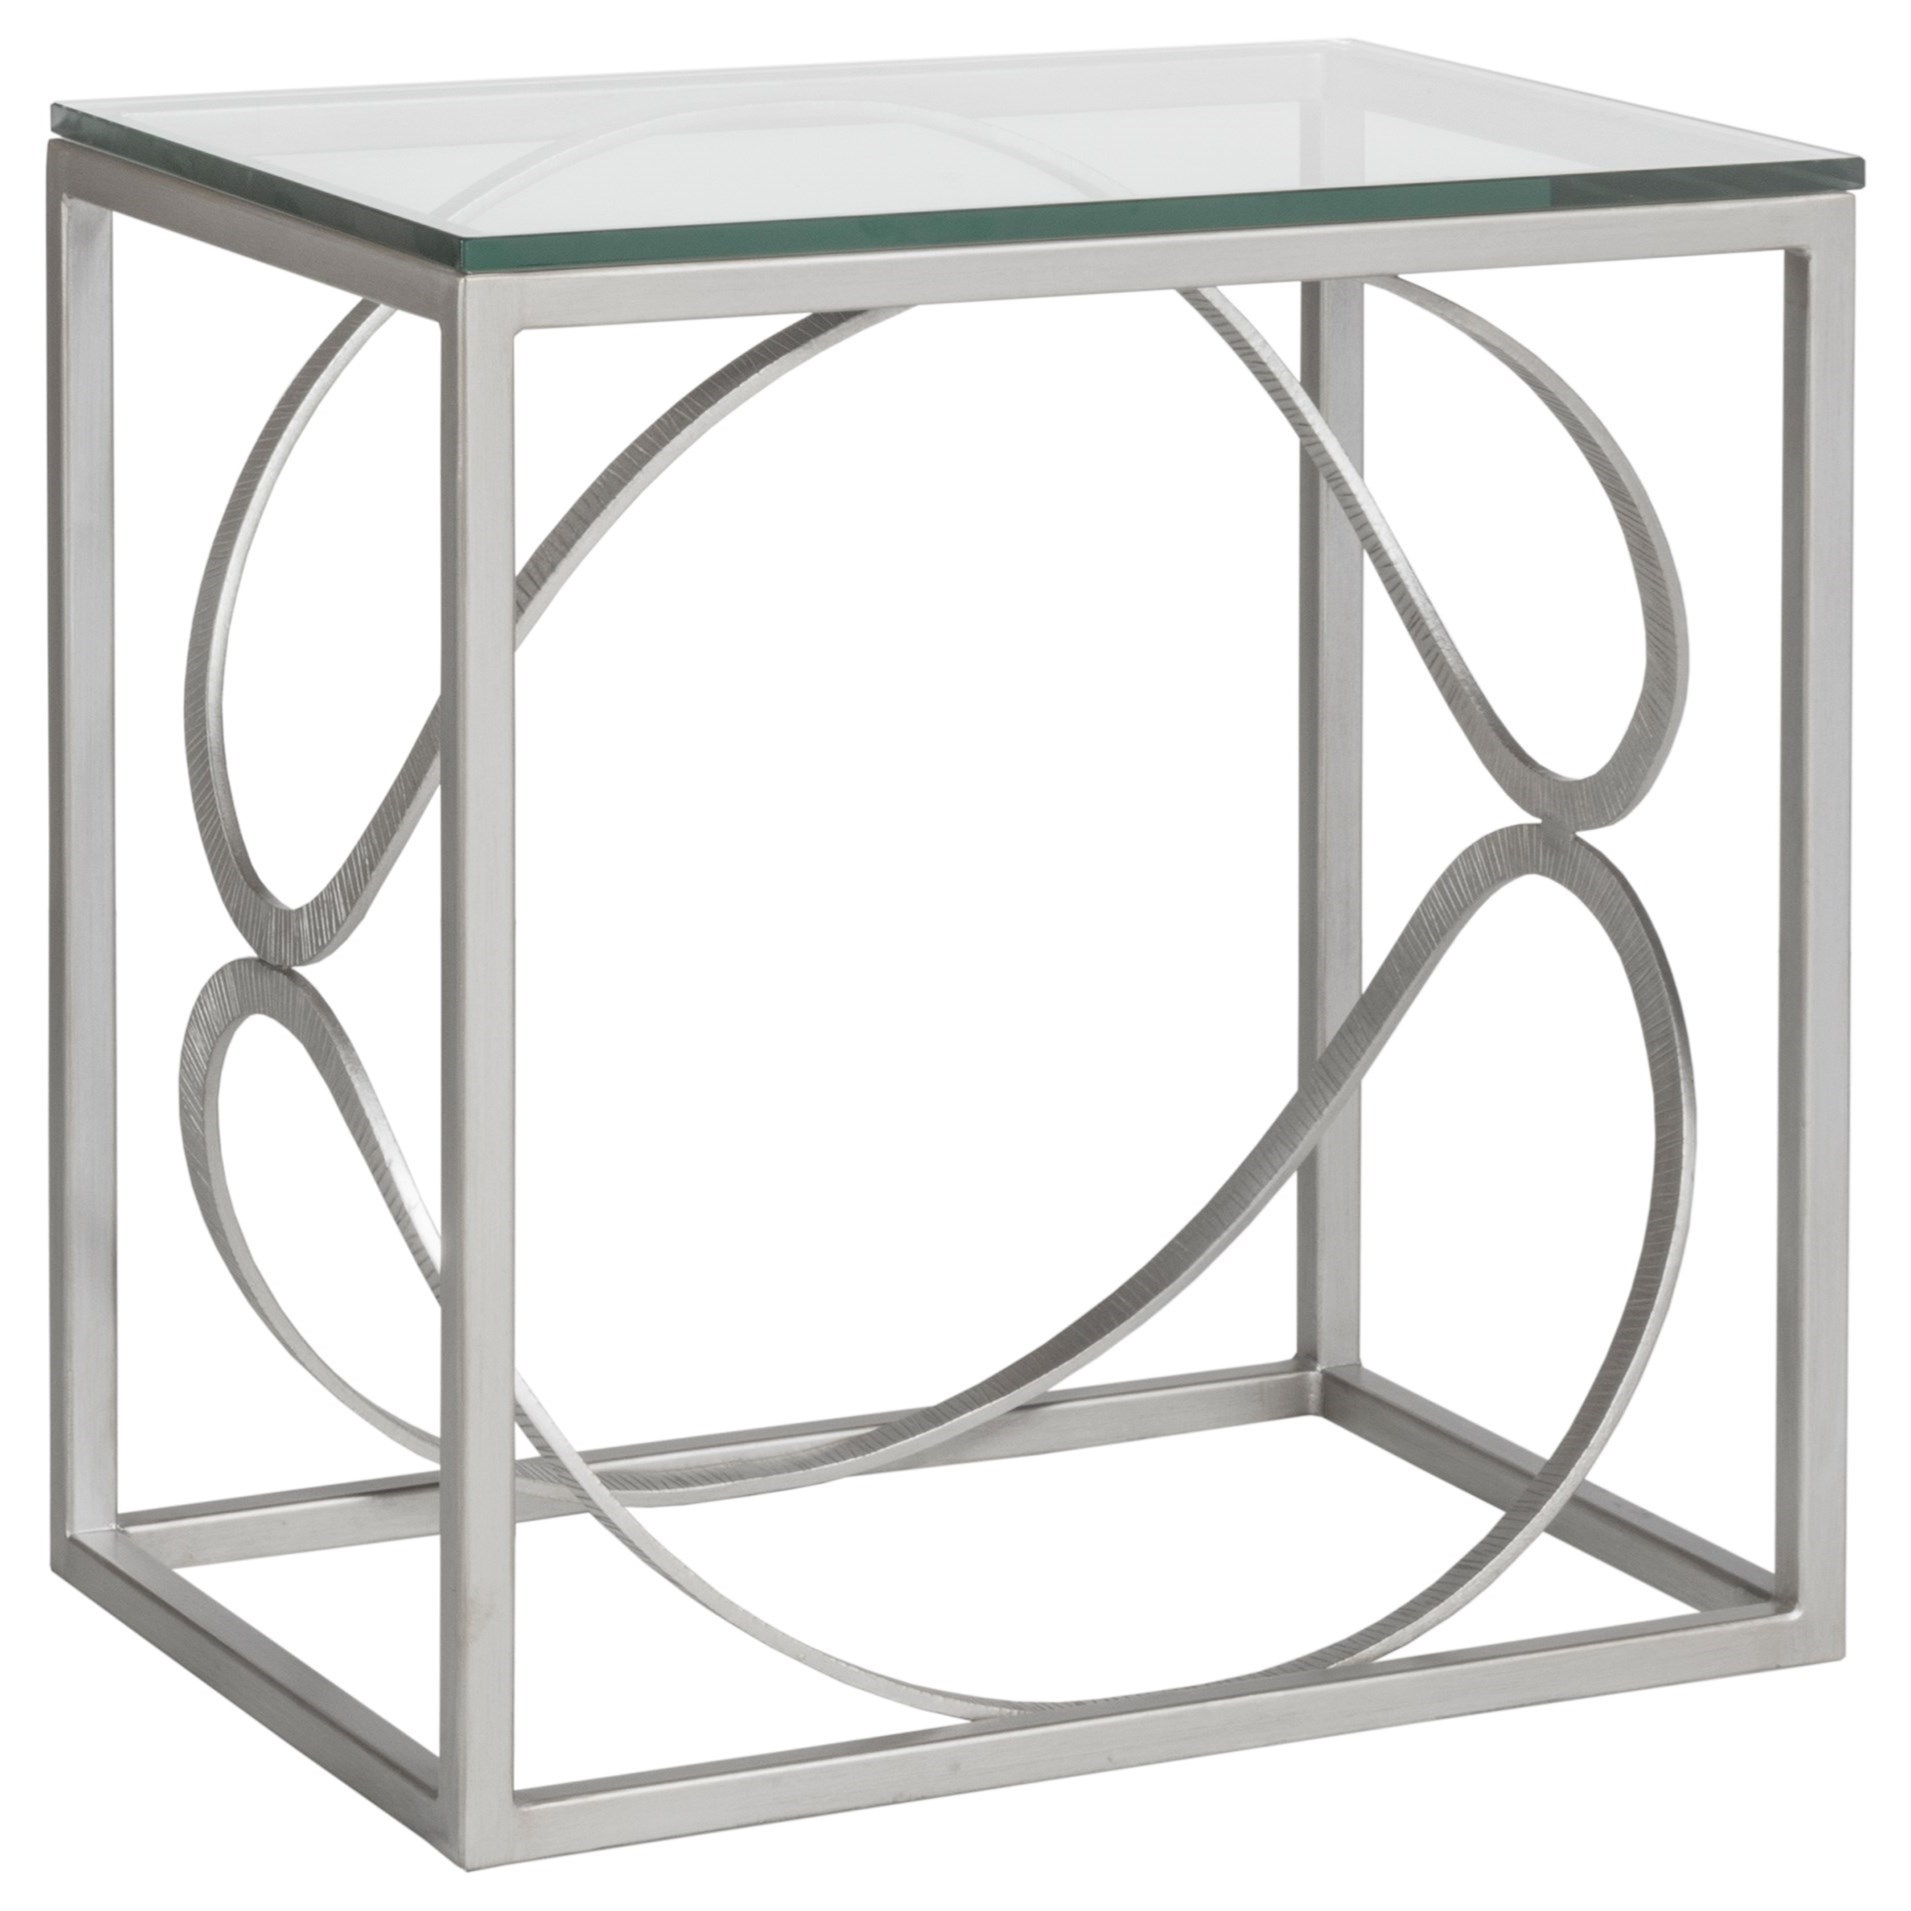 Metal Designs Ellipse Rectangular End Table by Artistica at Alison Craig Home Furnishings